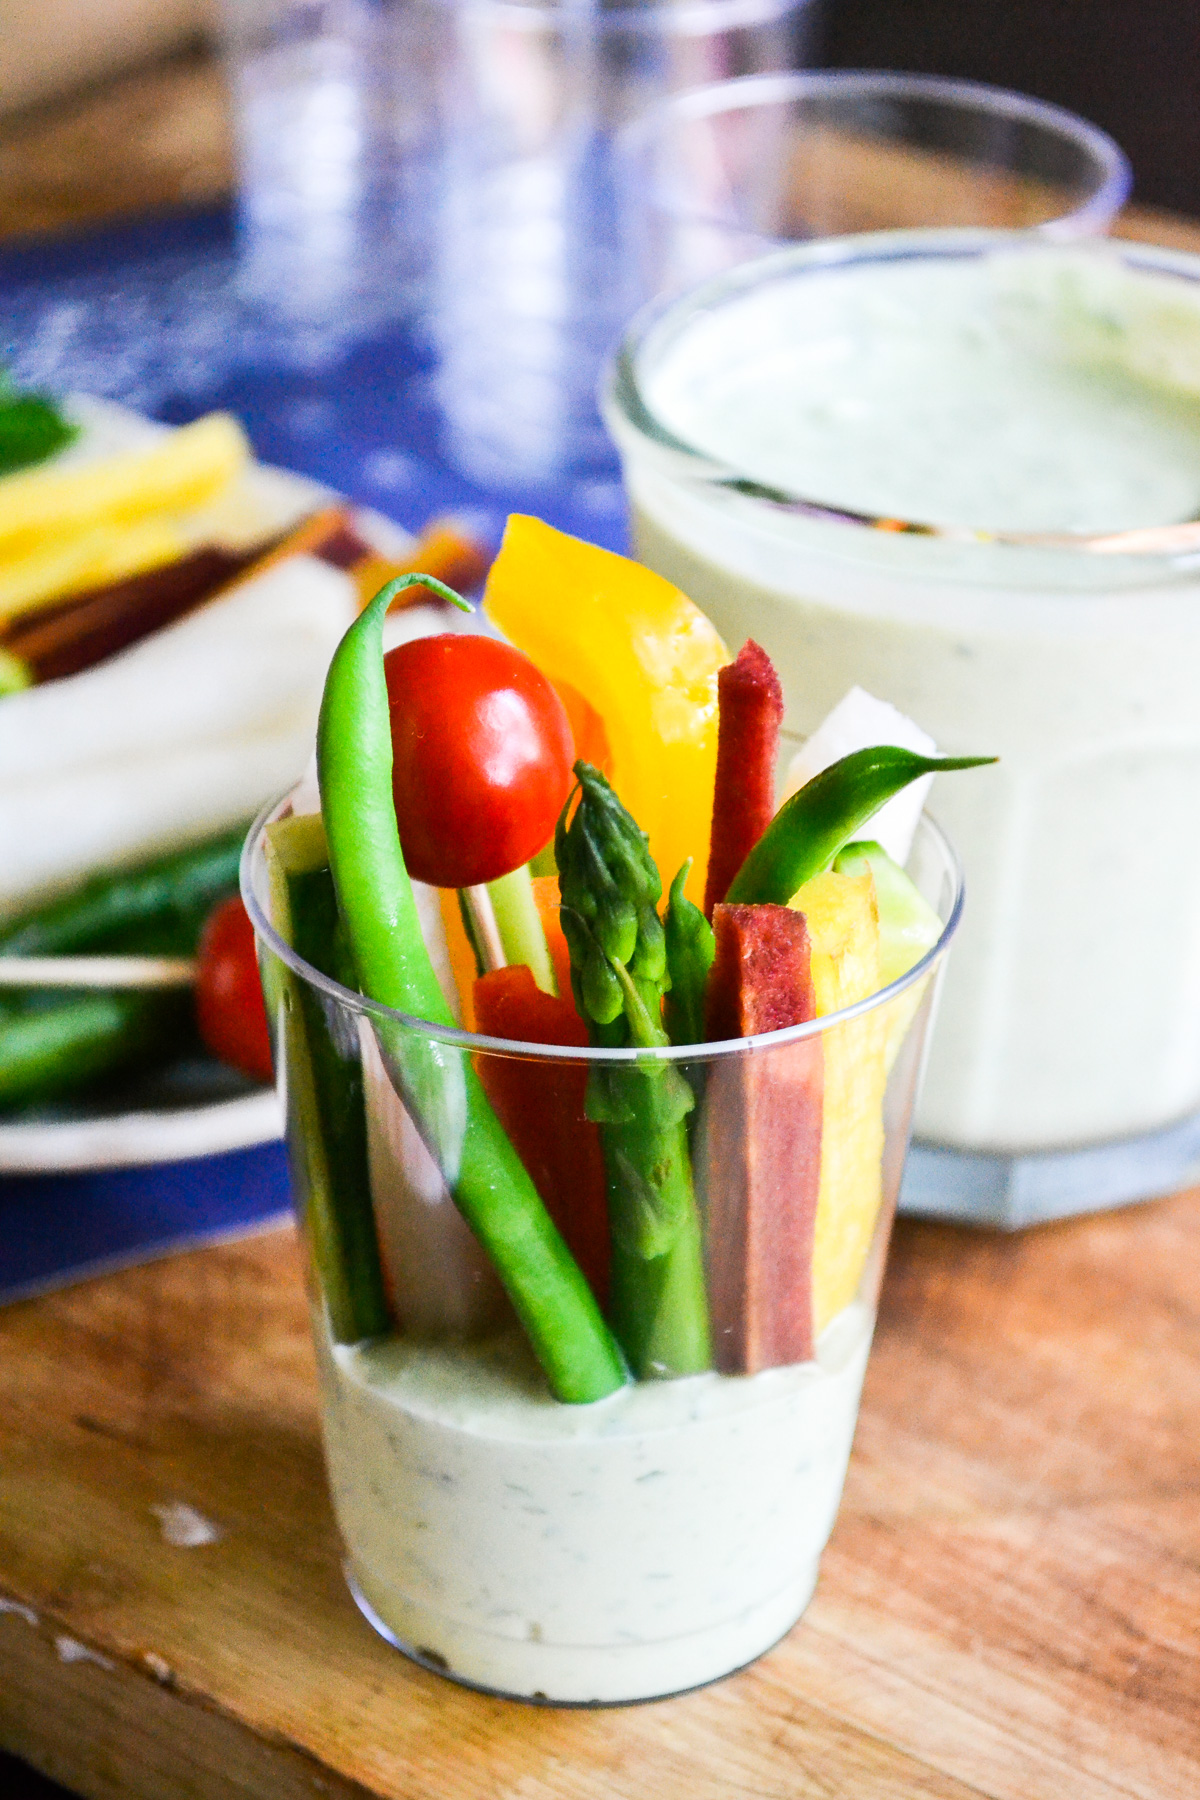 fresh veggies and dip in a portable cup